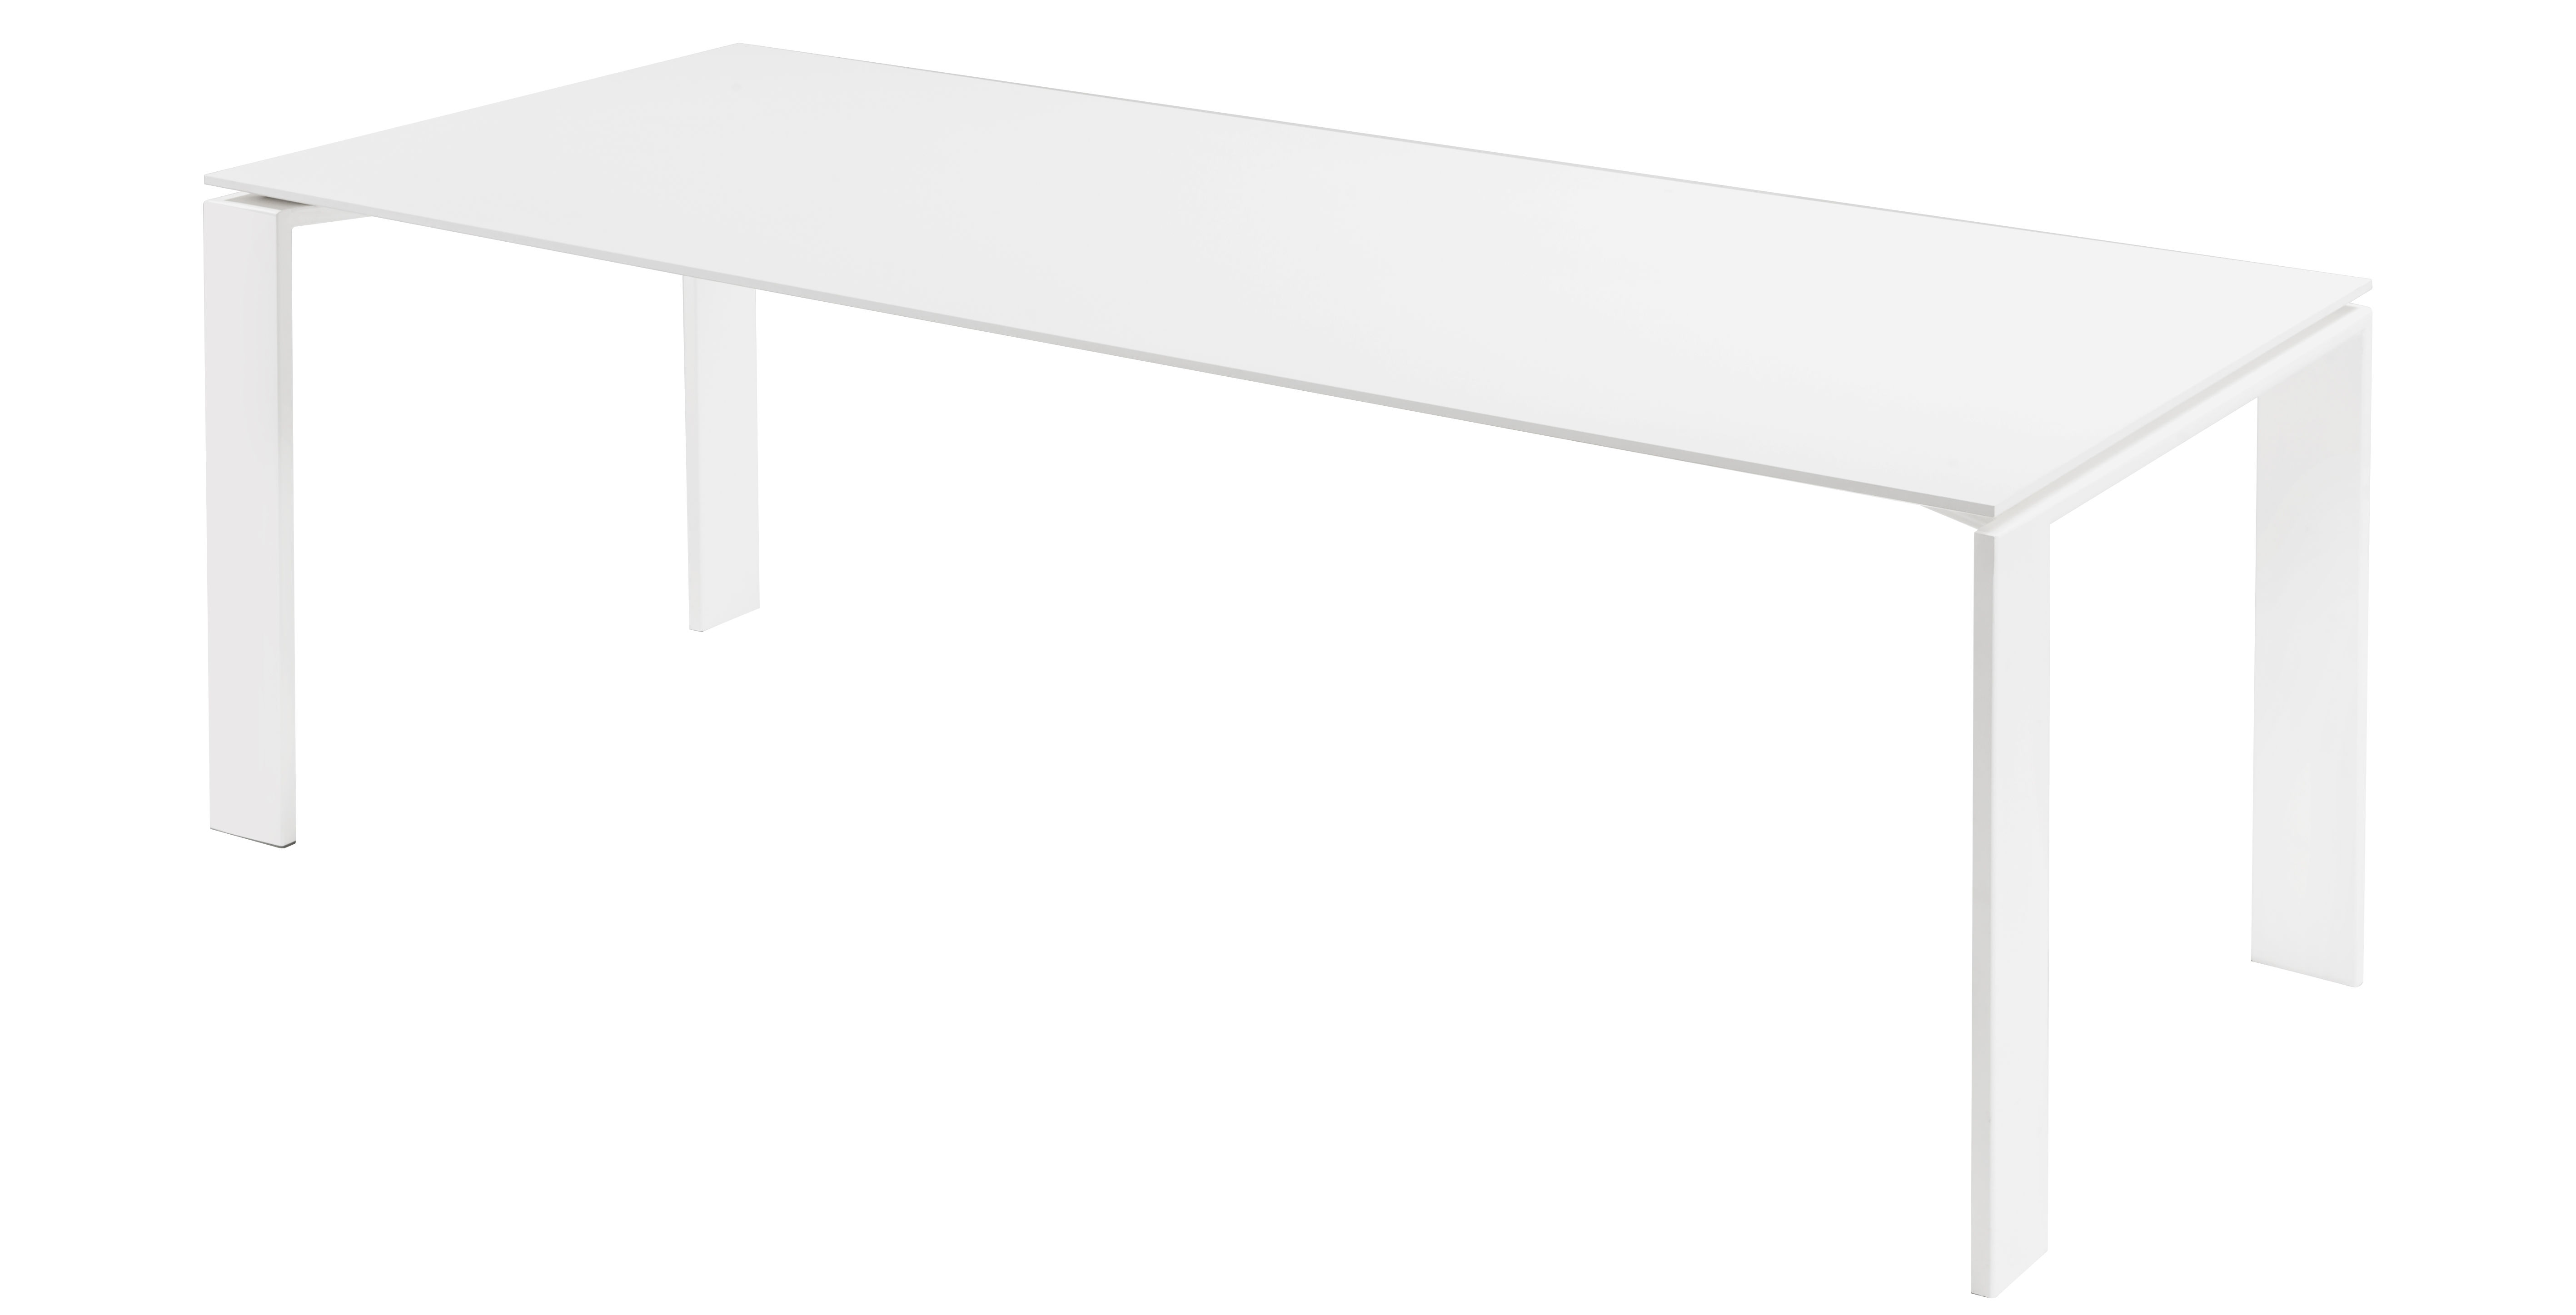 Kartell table l four table black l 190 cm 190 cm by for Table 140 x 70